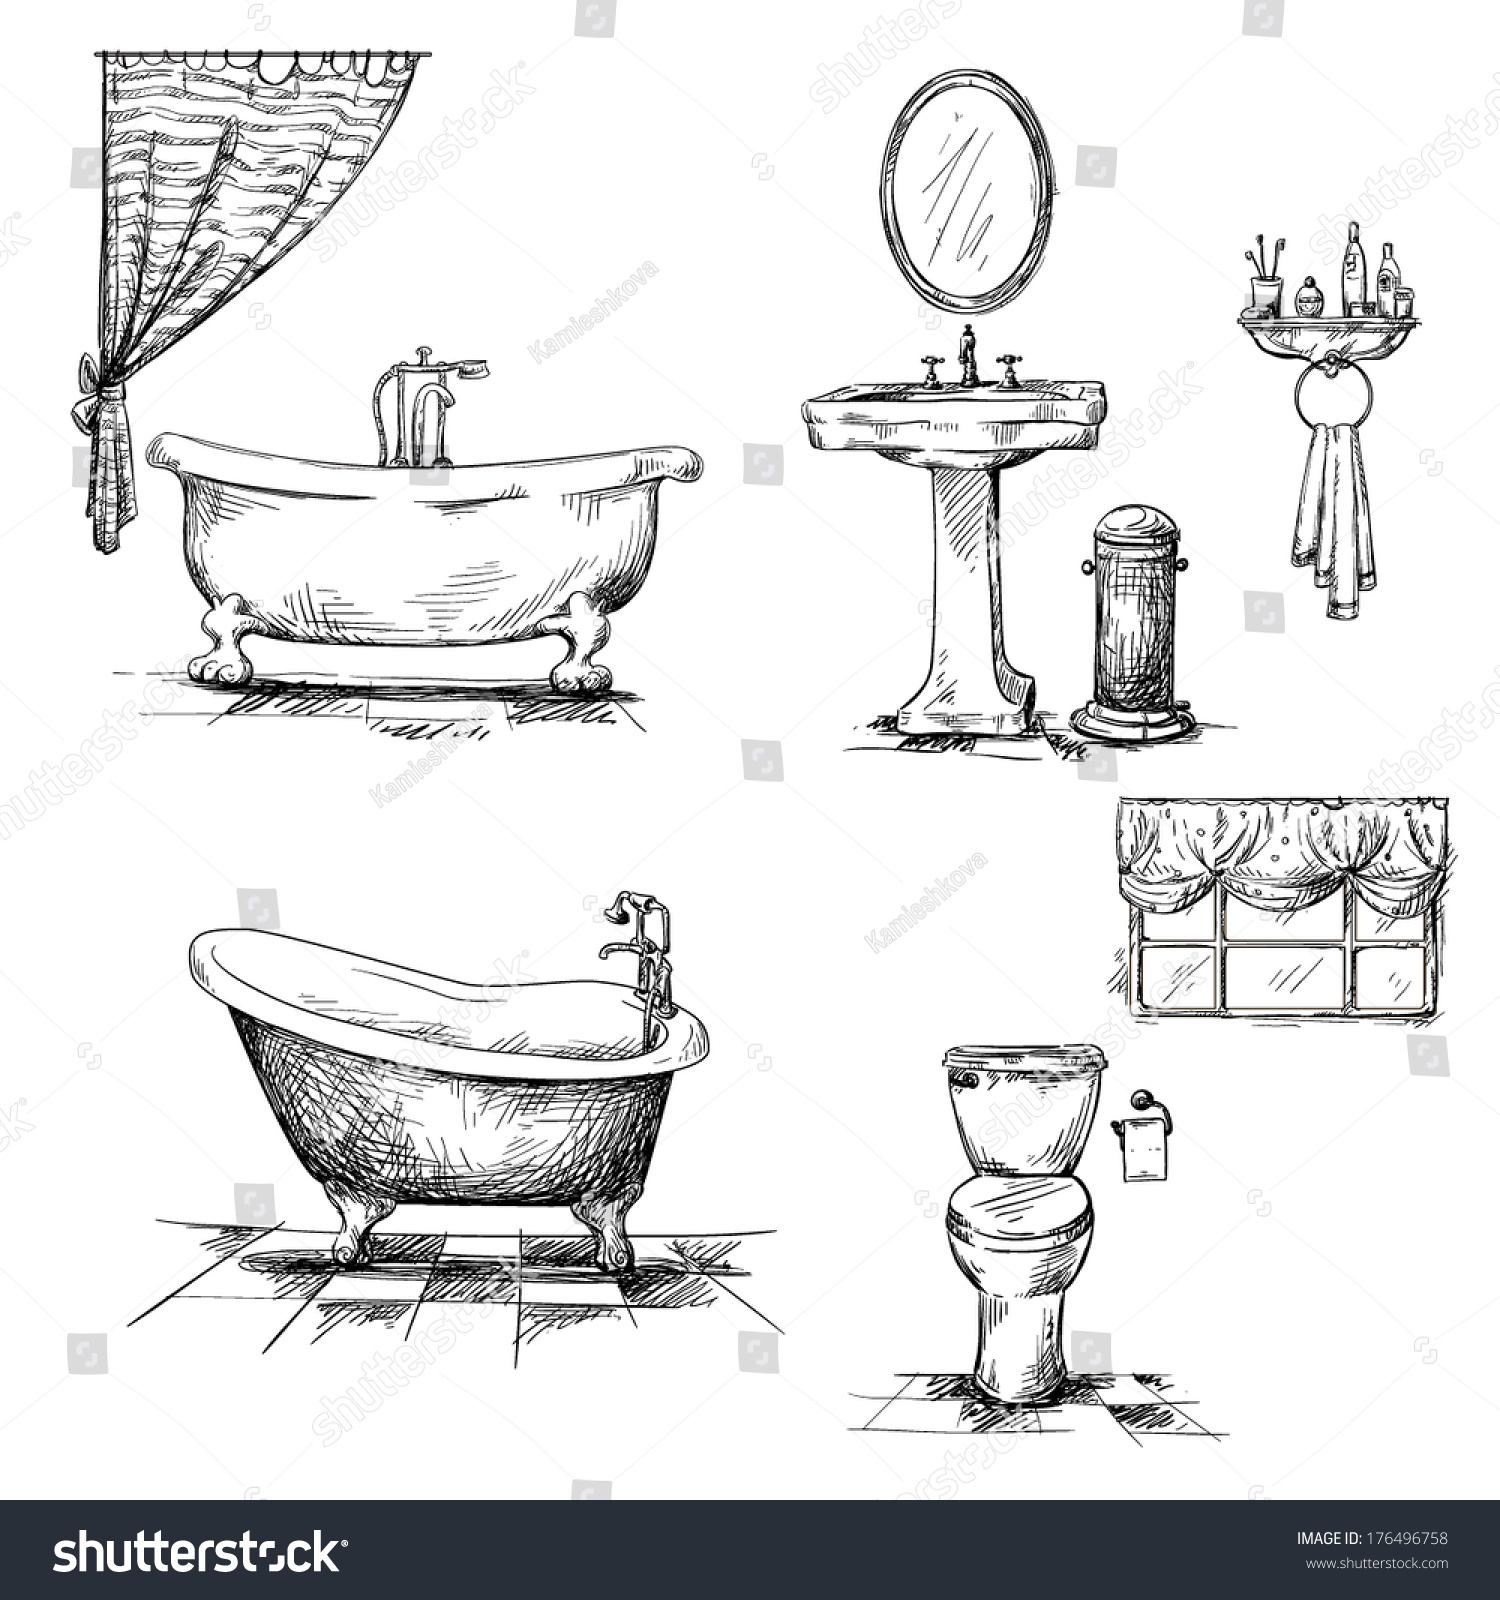 Bathroom sink drawing - Bathroom Interior Elements Hand Drawn Bathtub Toilet Bowl Sink Vector